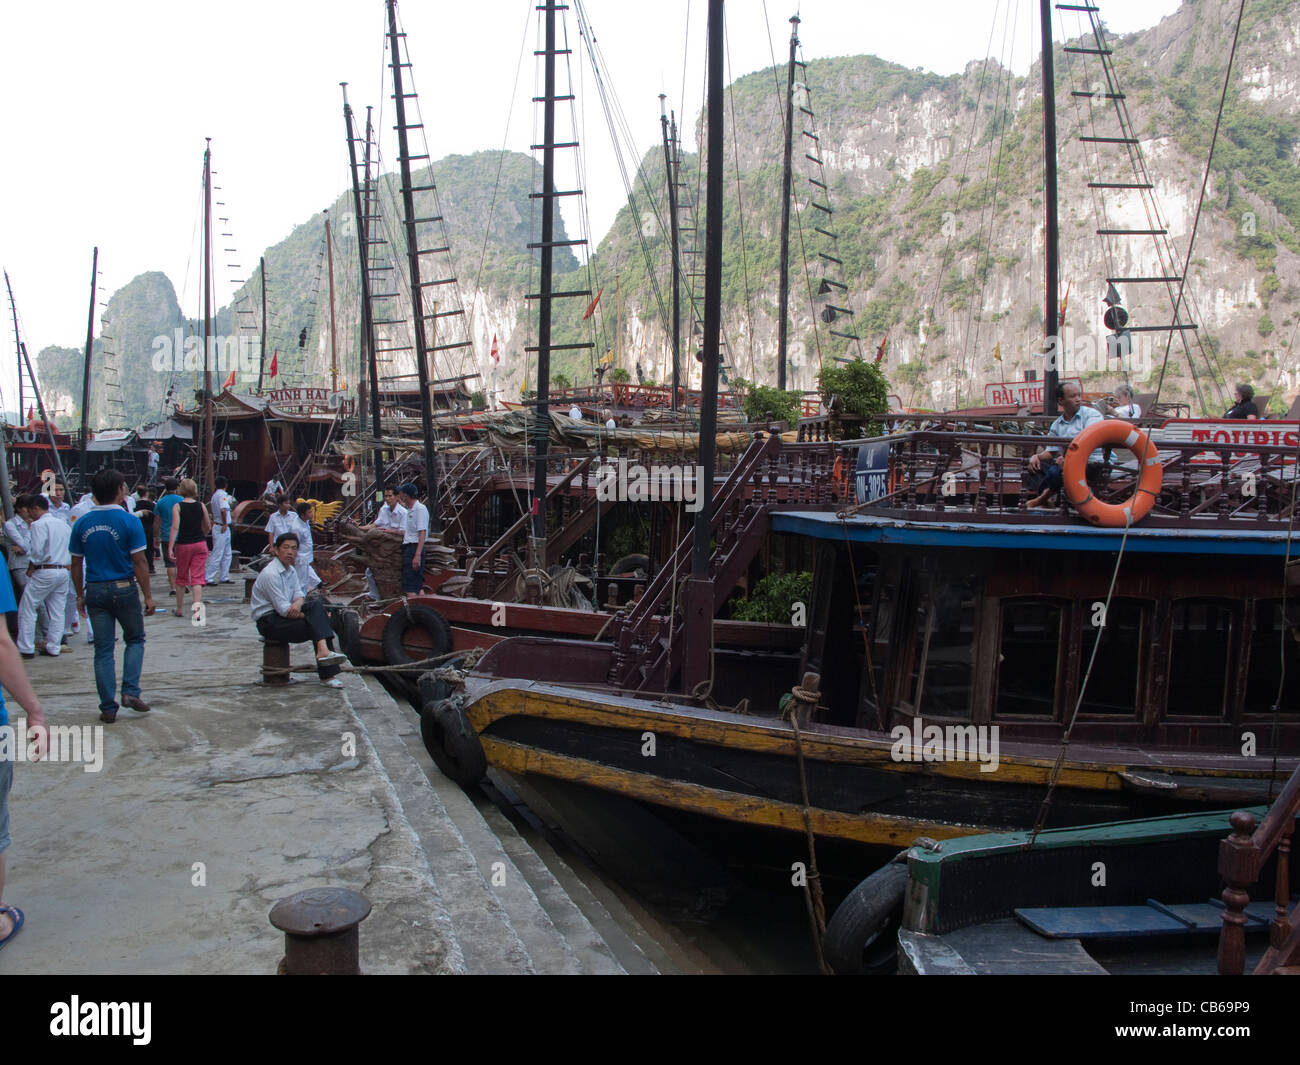 Tourist junk boats moored at Halong Bay in Vietnam - Stock Image